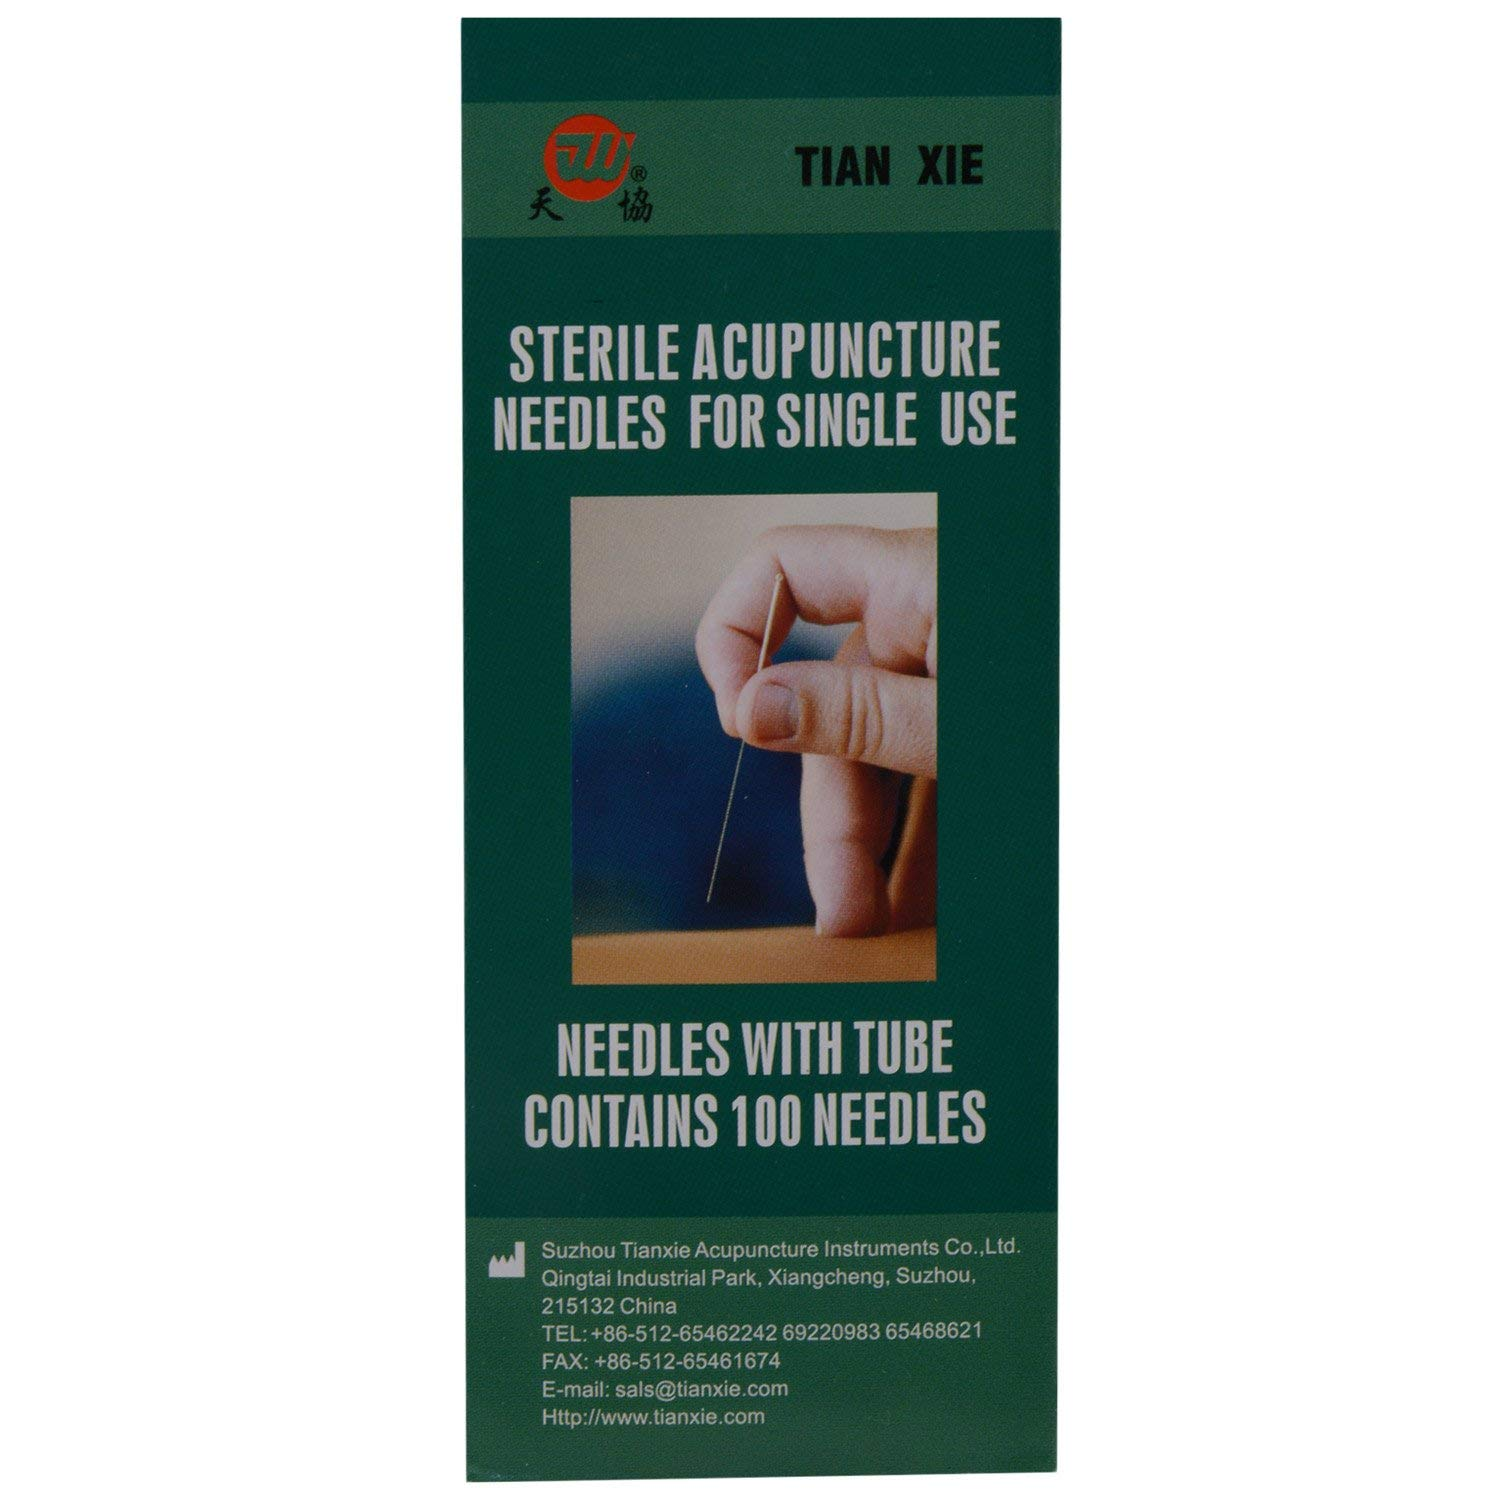 JW Sterile Acupuncture for Single Use (100 pcs) (0.25X40mm) by AHCS